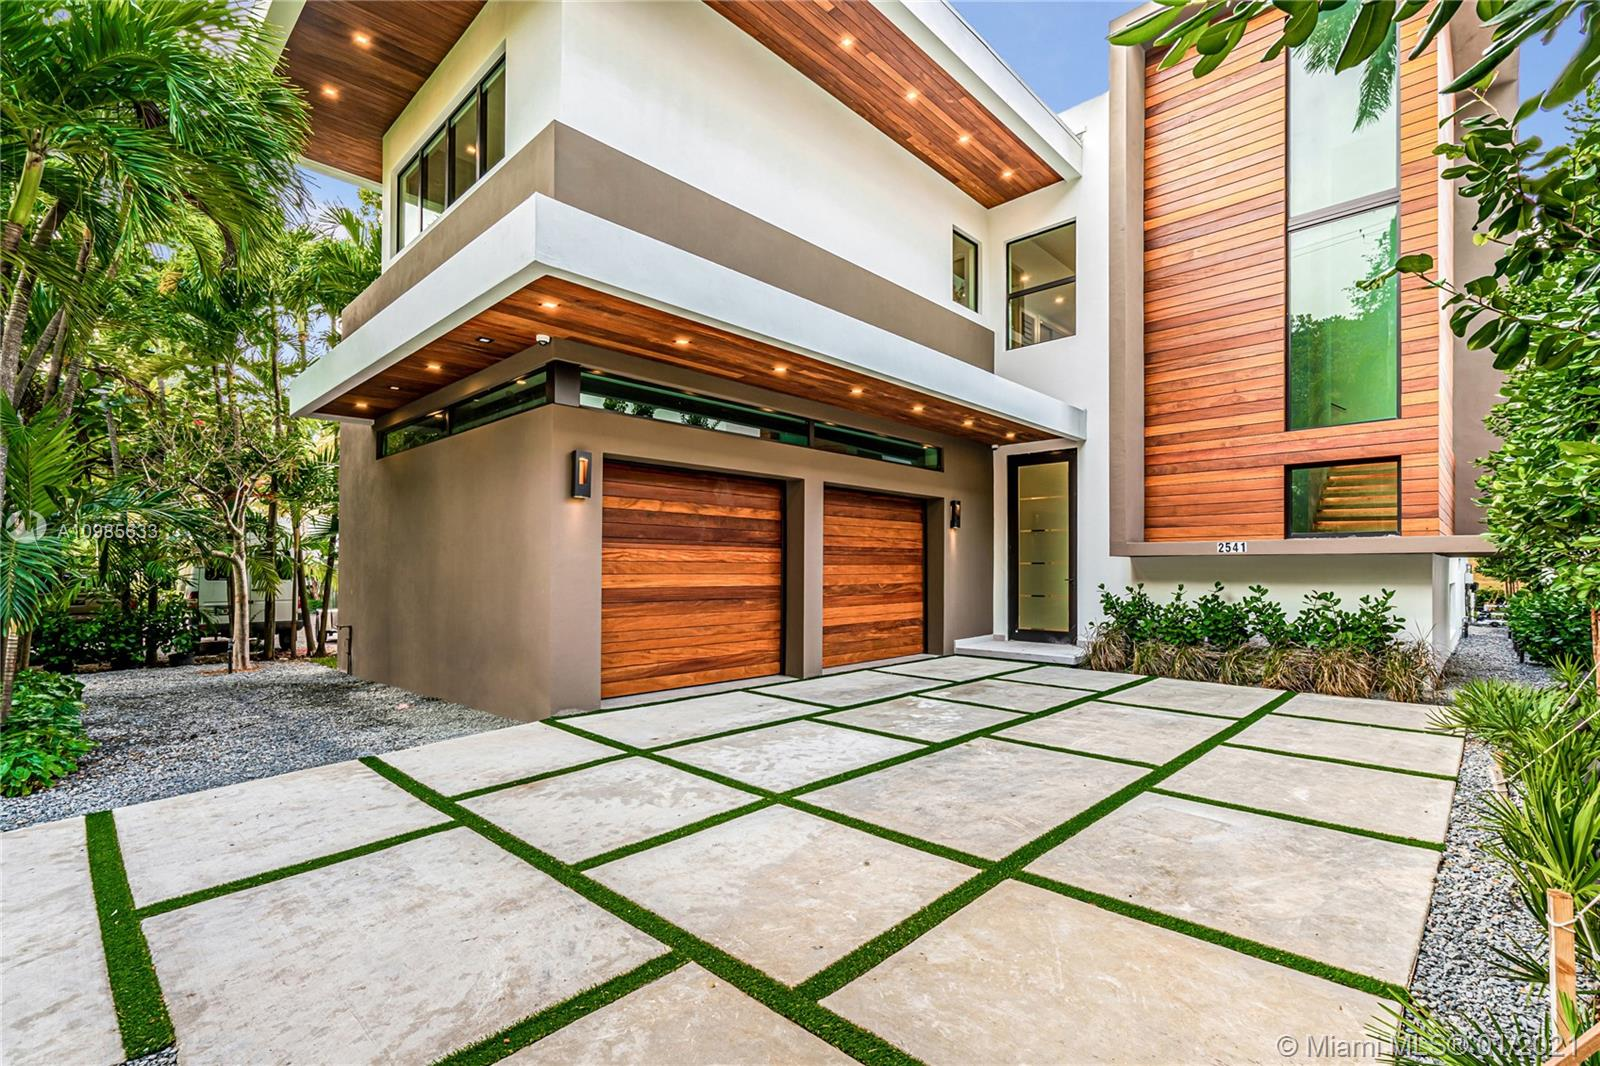 Details for 2541 Tigertail Ave, Coconut Grove, FL 33133